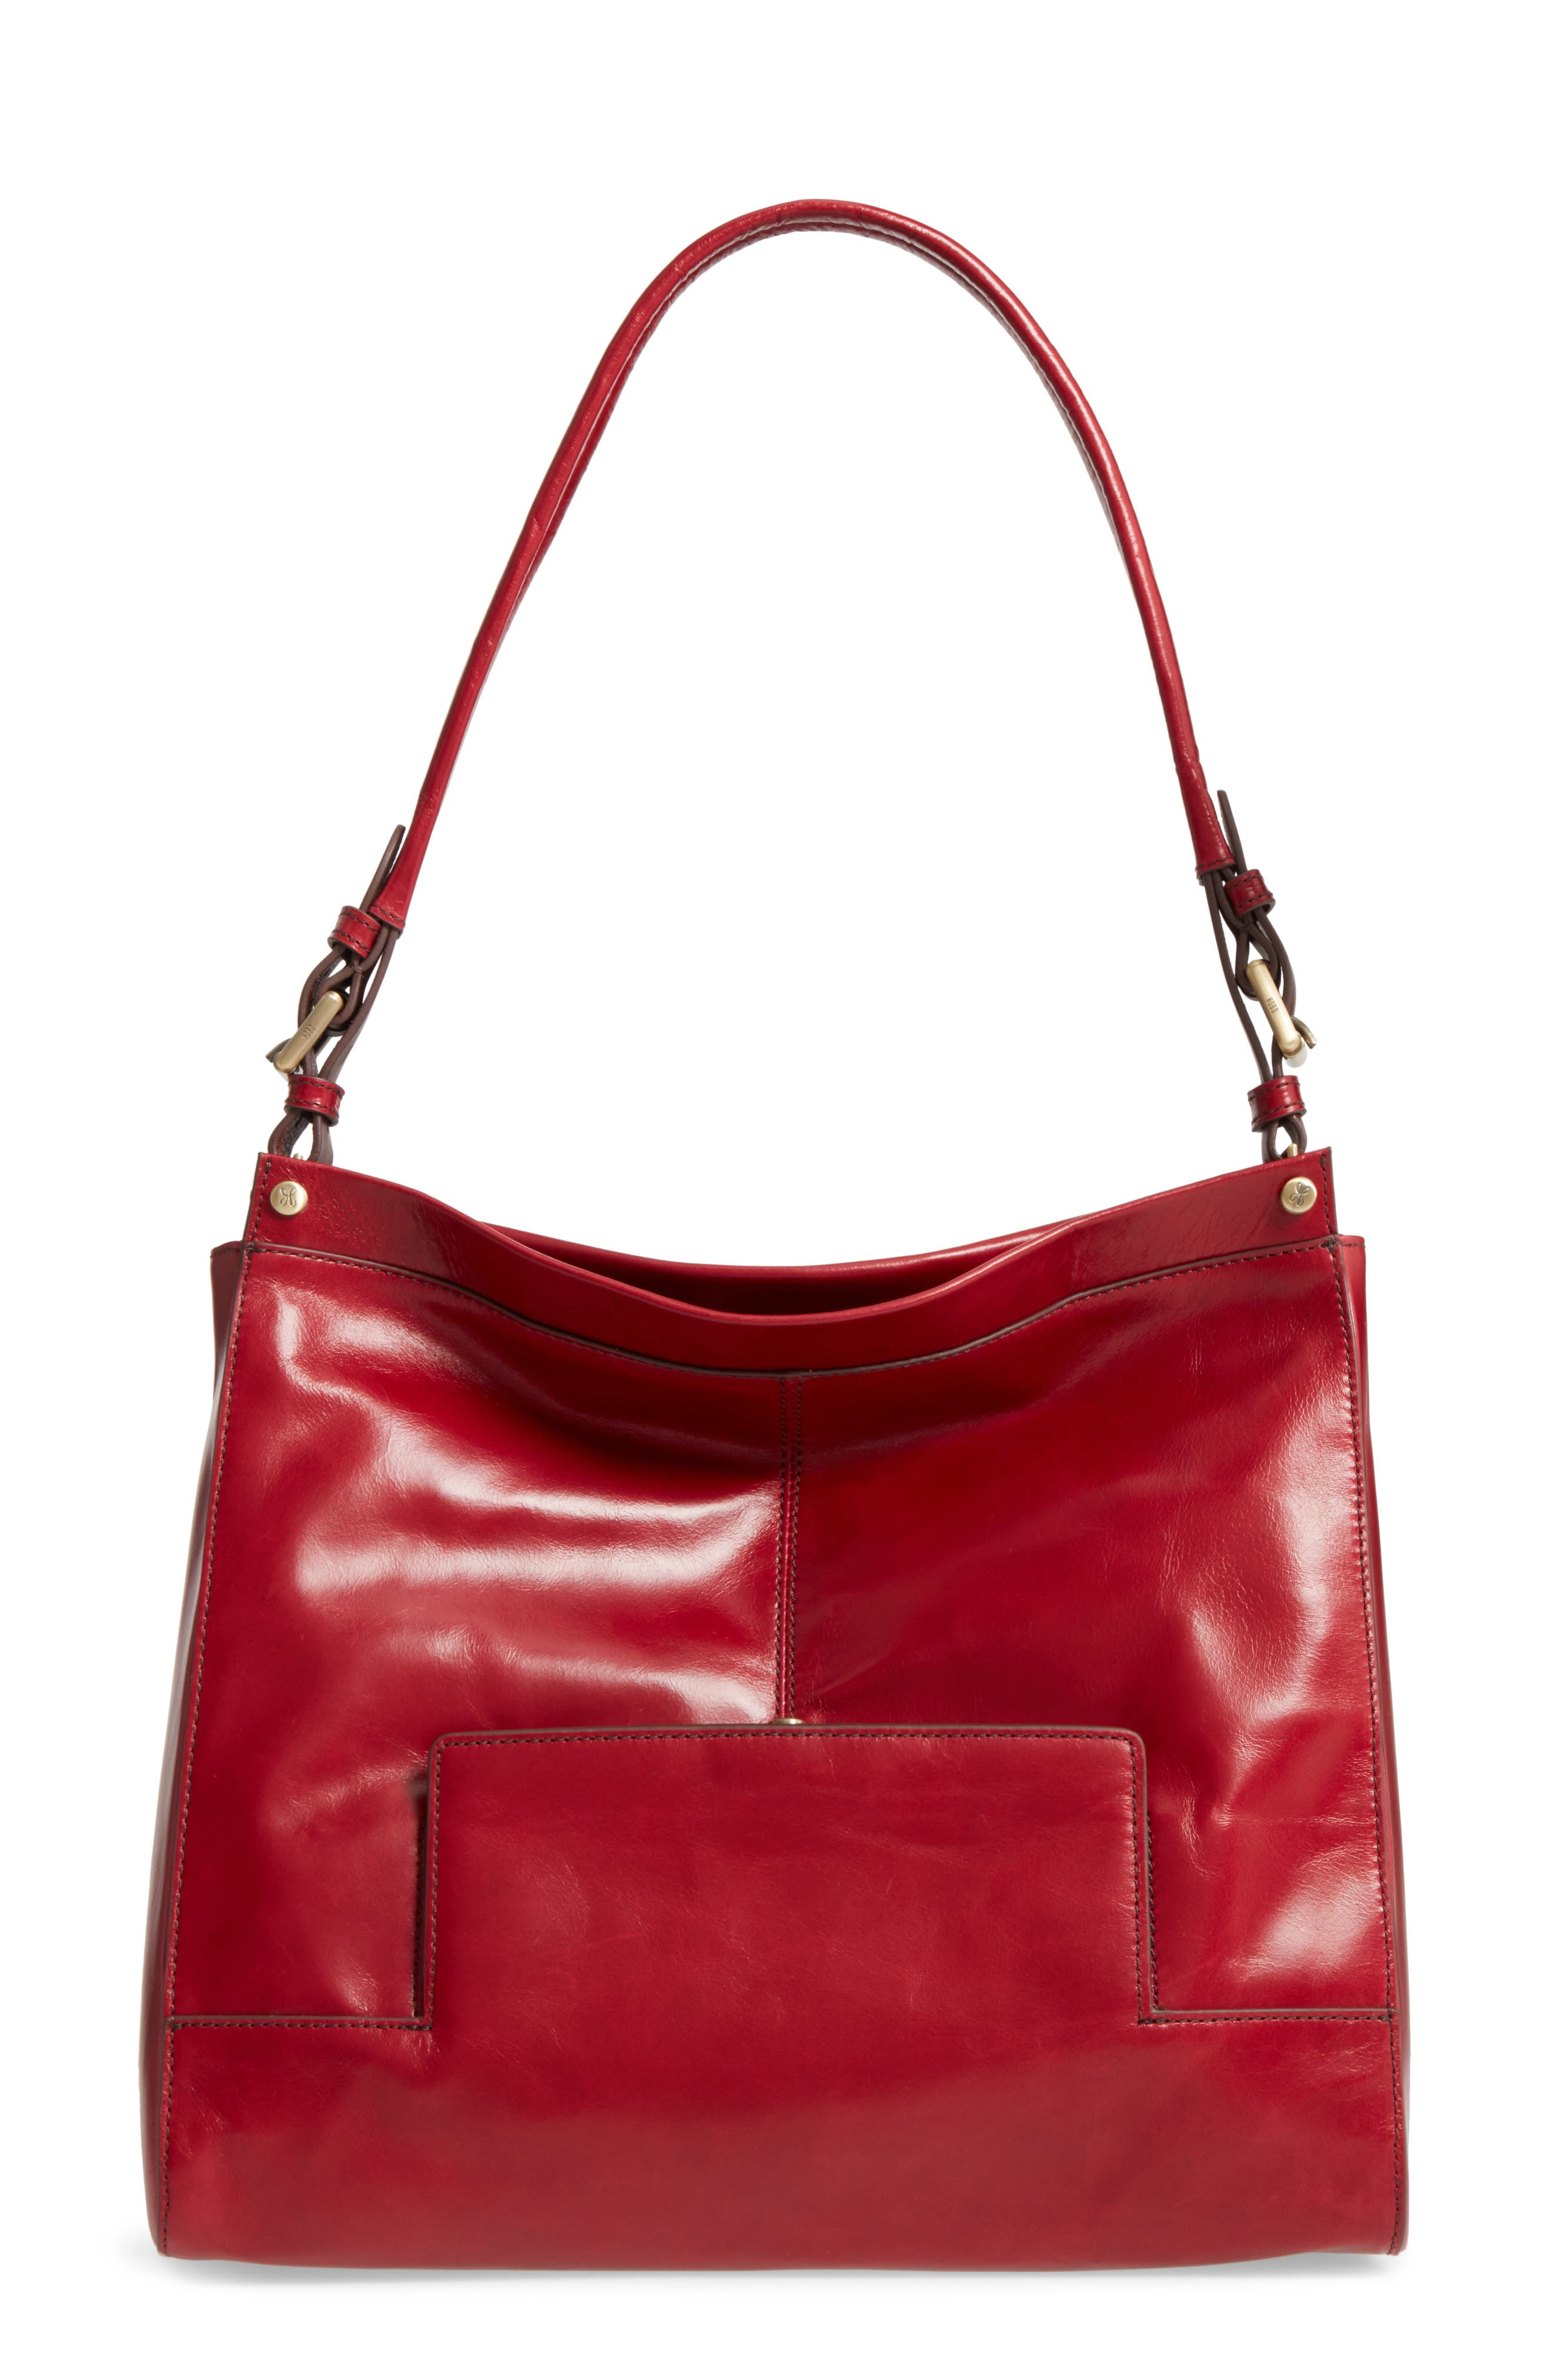 Hobo Valor Calfskin Leather Tote